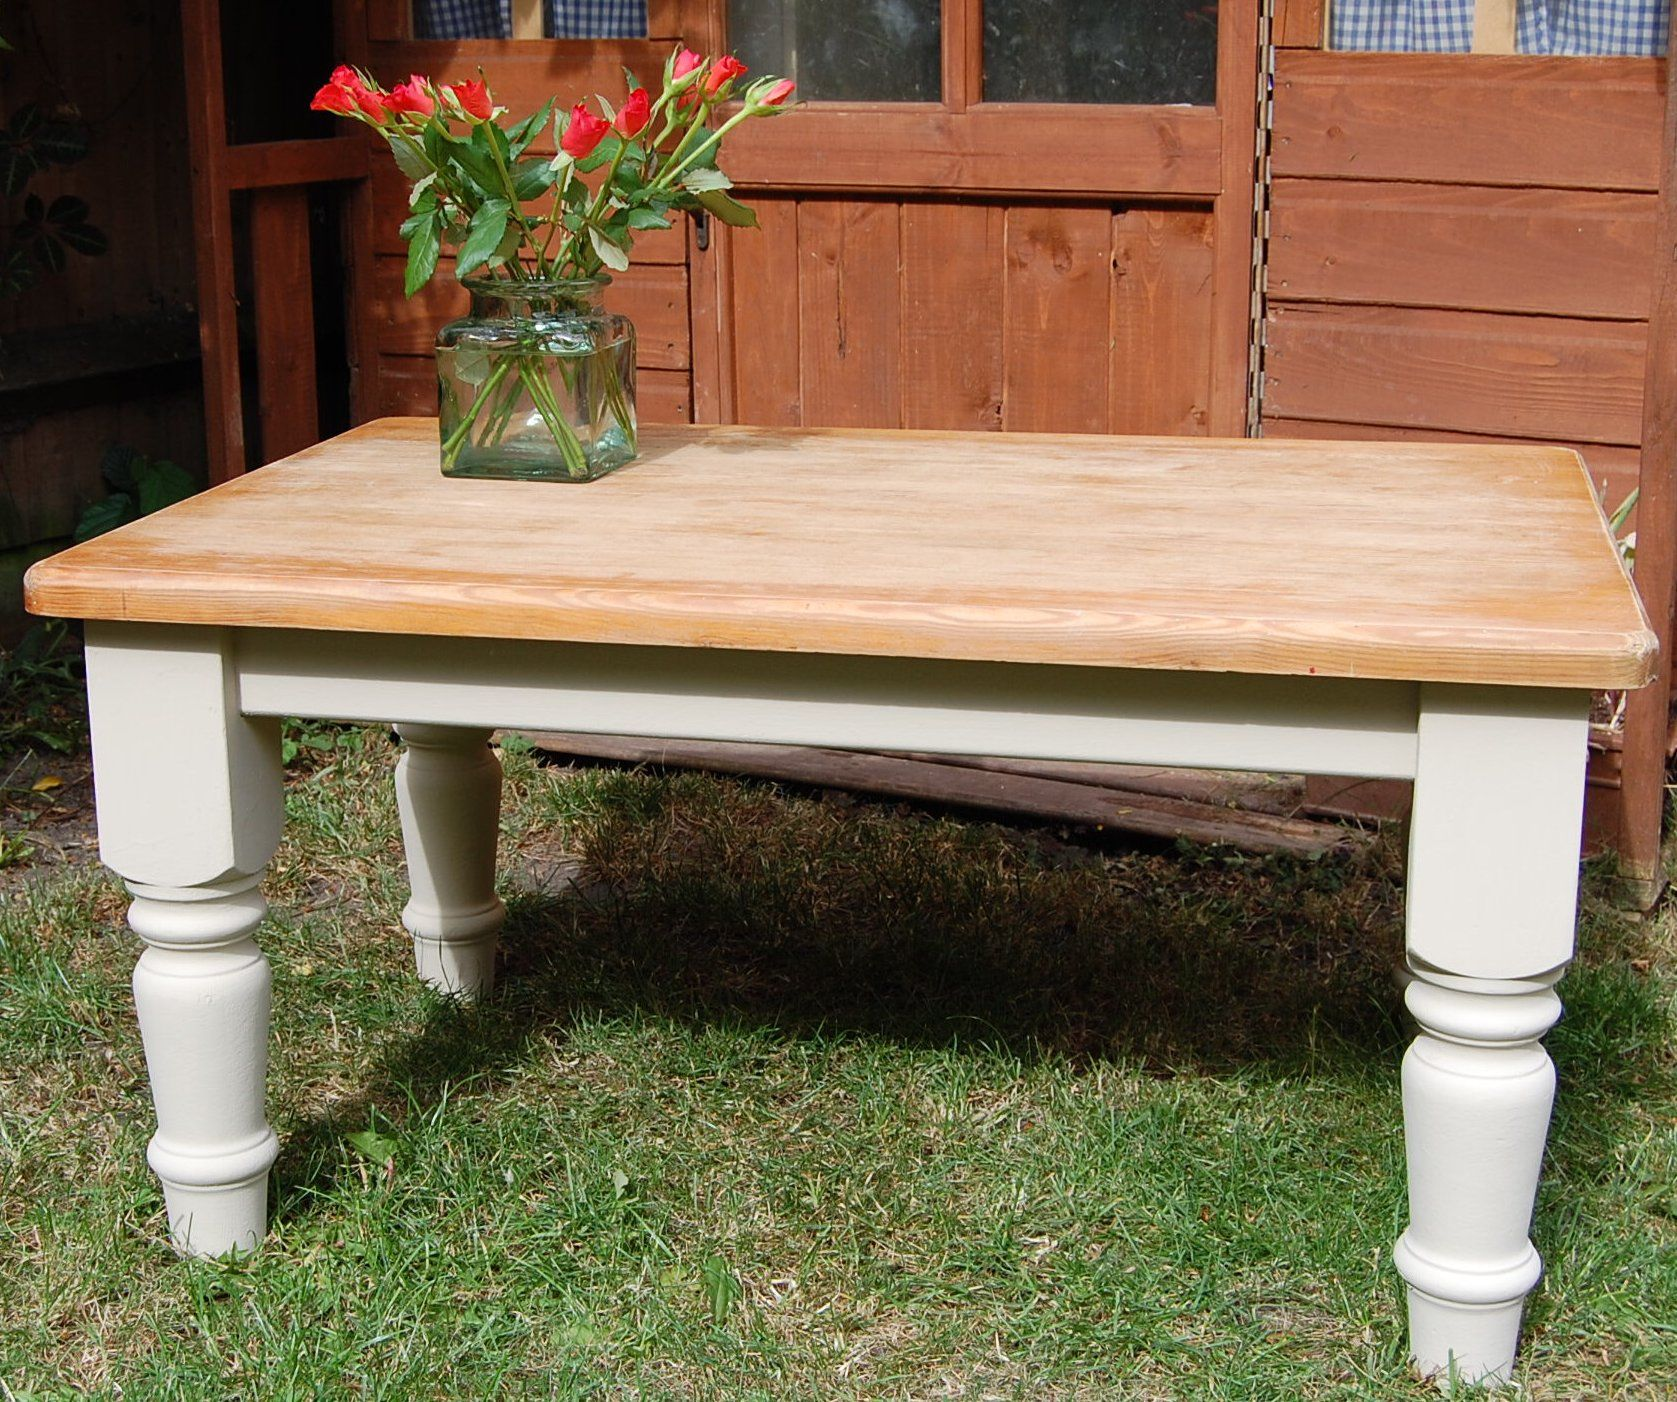 Pin by Lindsay Pearce on Crafty ideas   Pine coffee table ...